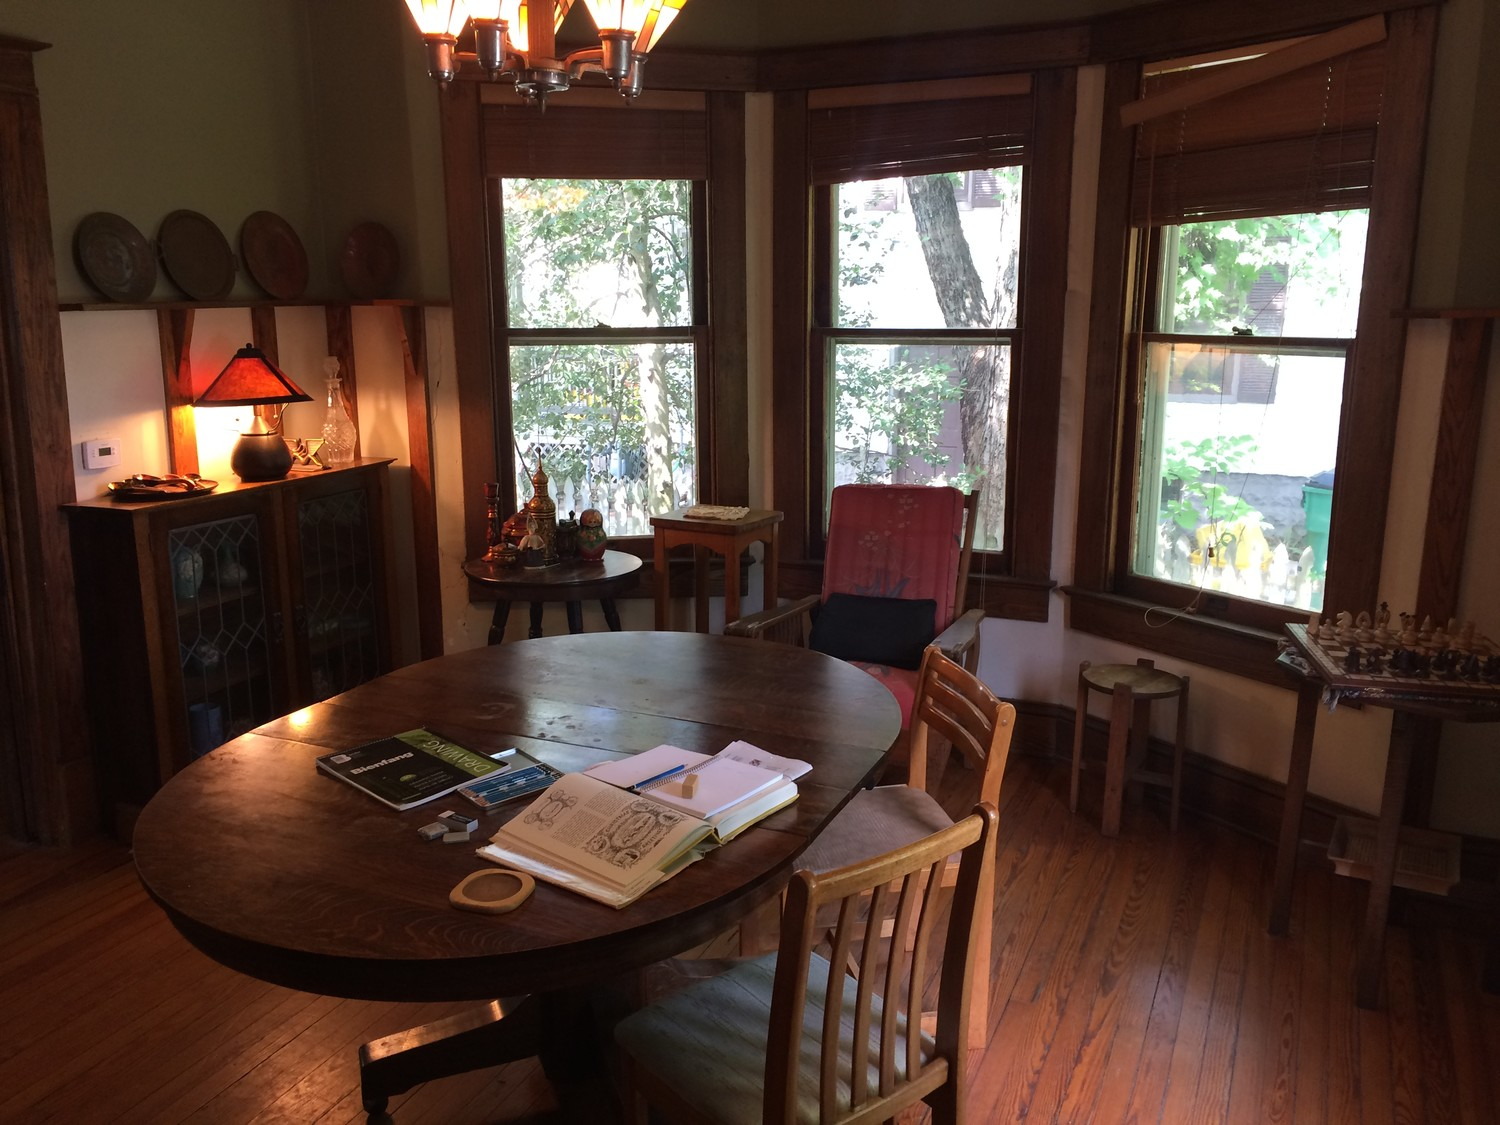 Urbane Hosts in Historic Home